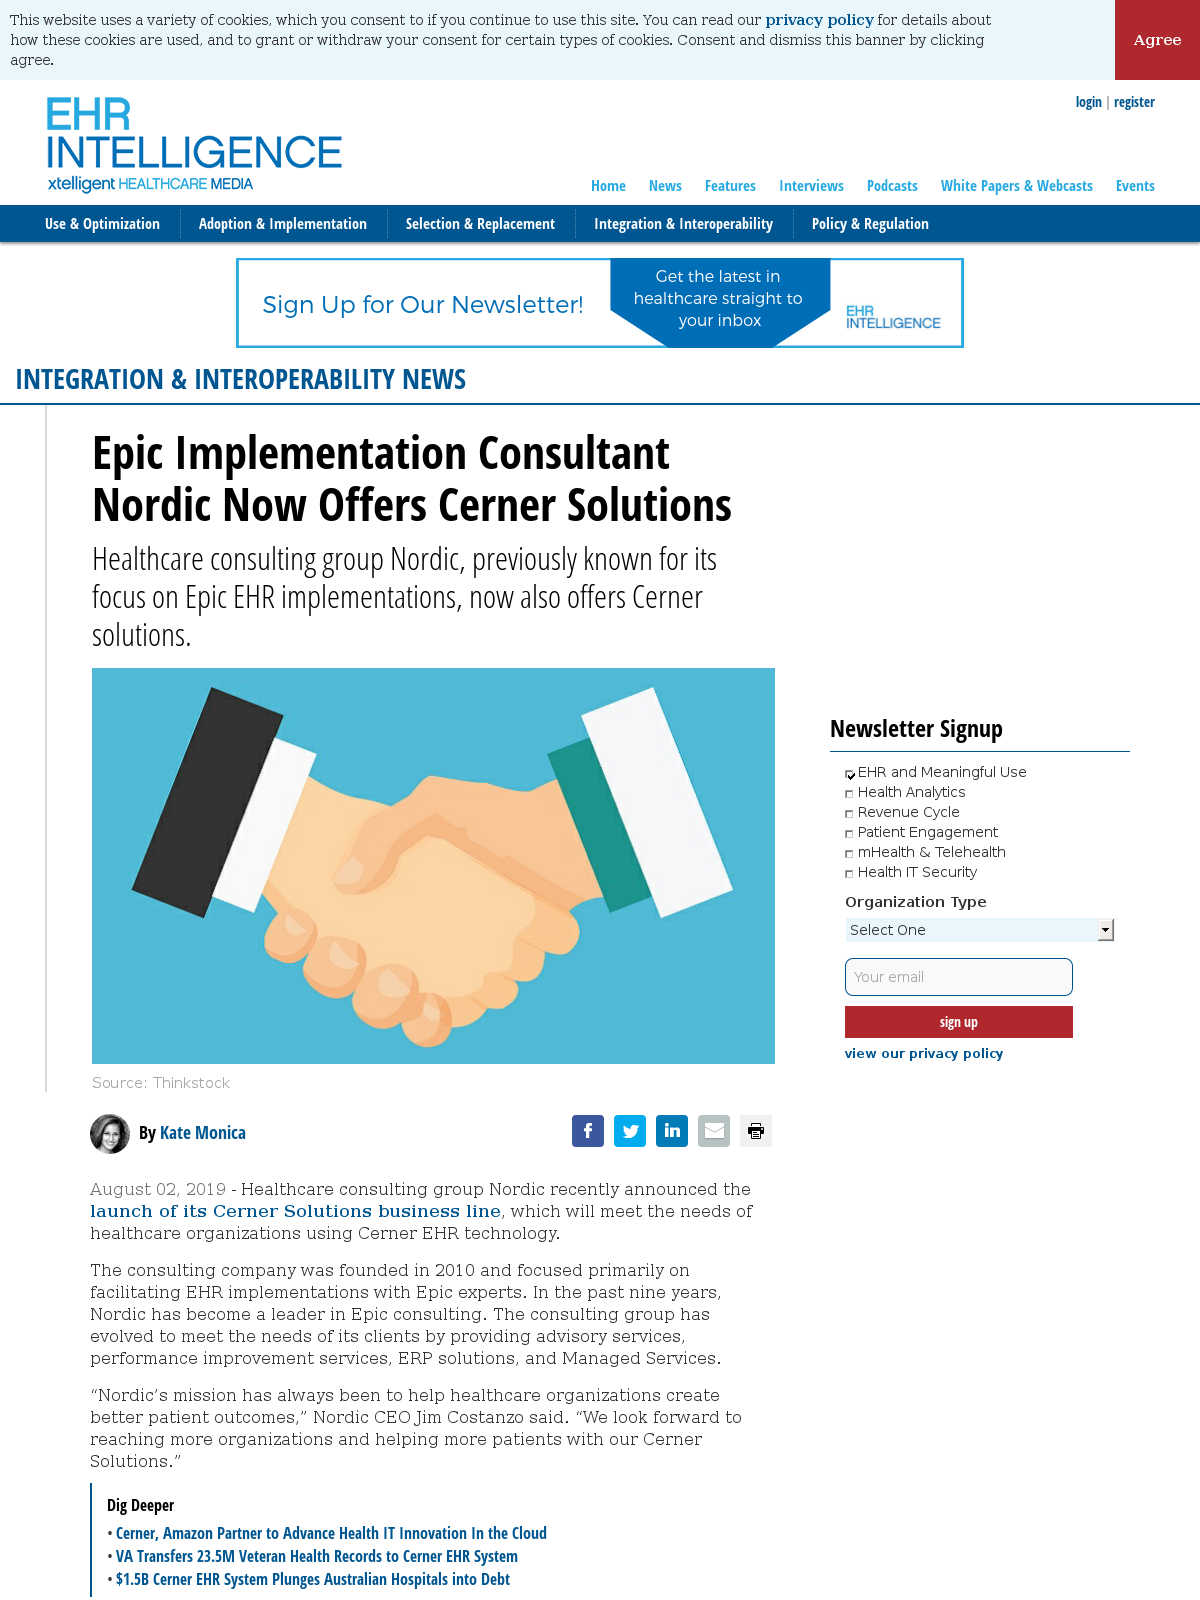 Epic Implementation Consultant Nordic Now Offers Cerner